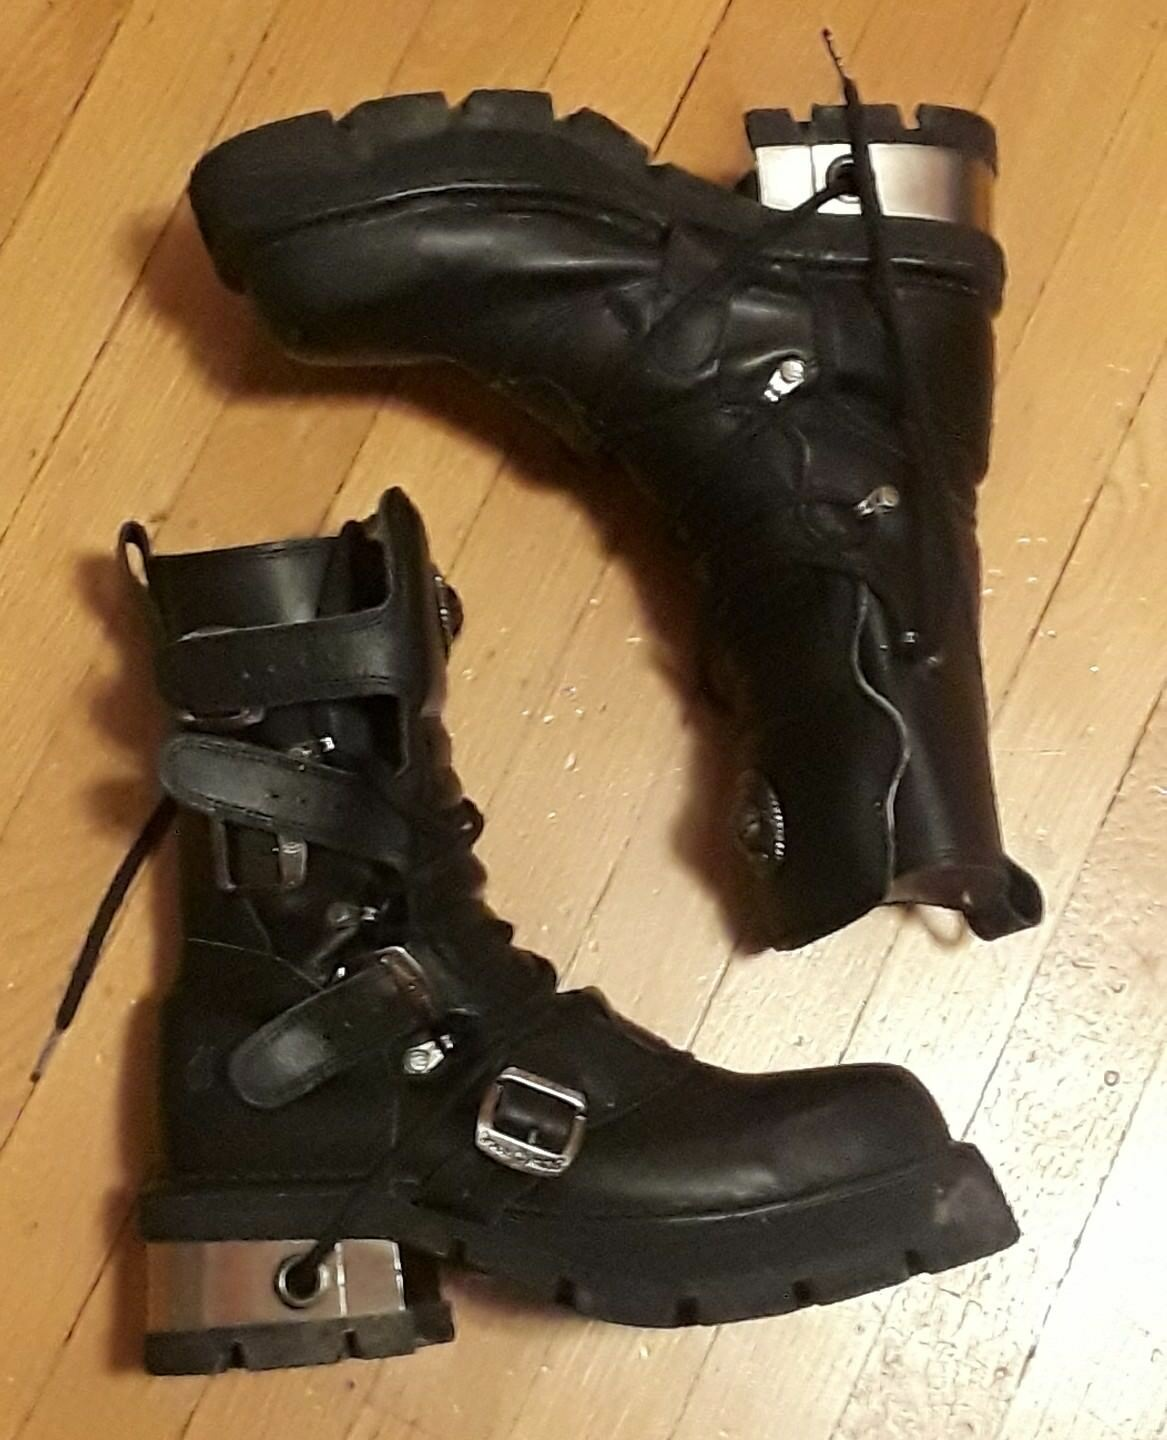 NEW ROCK REACTOR BLACK LEATHER CYBER GOTH STEAM-PUNK 4 BUCKLE PLATFORM BOOTS 42